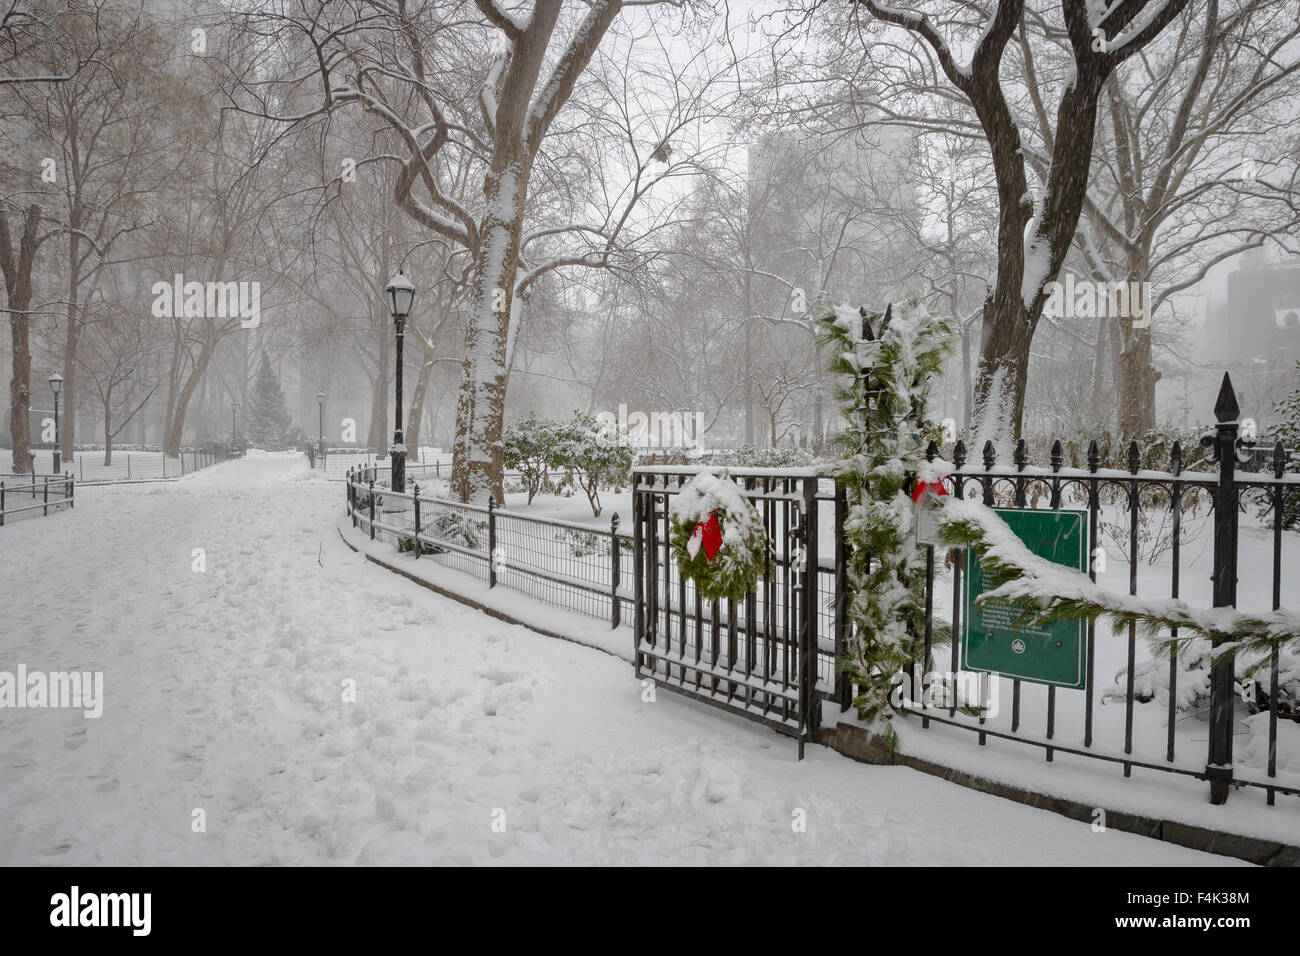 Madison Square Park covered with snow. Wintertime in the Flatiron District, Midtown Manhattan, New York City, USA - Stock Image